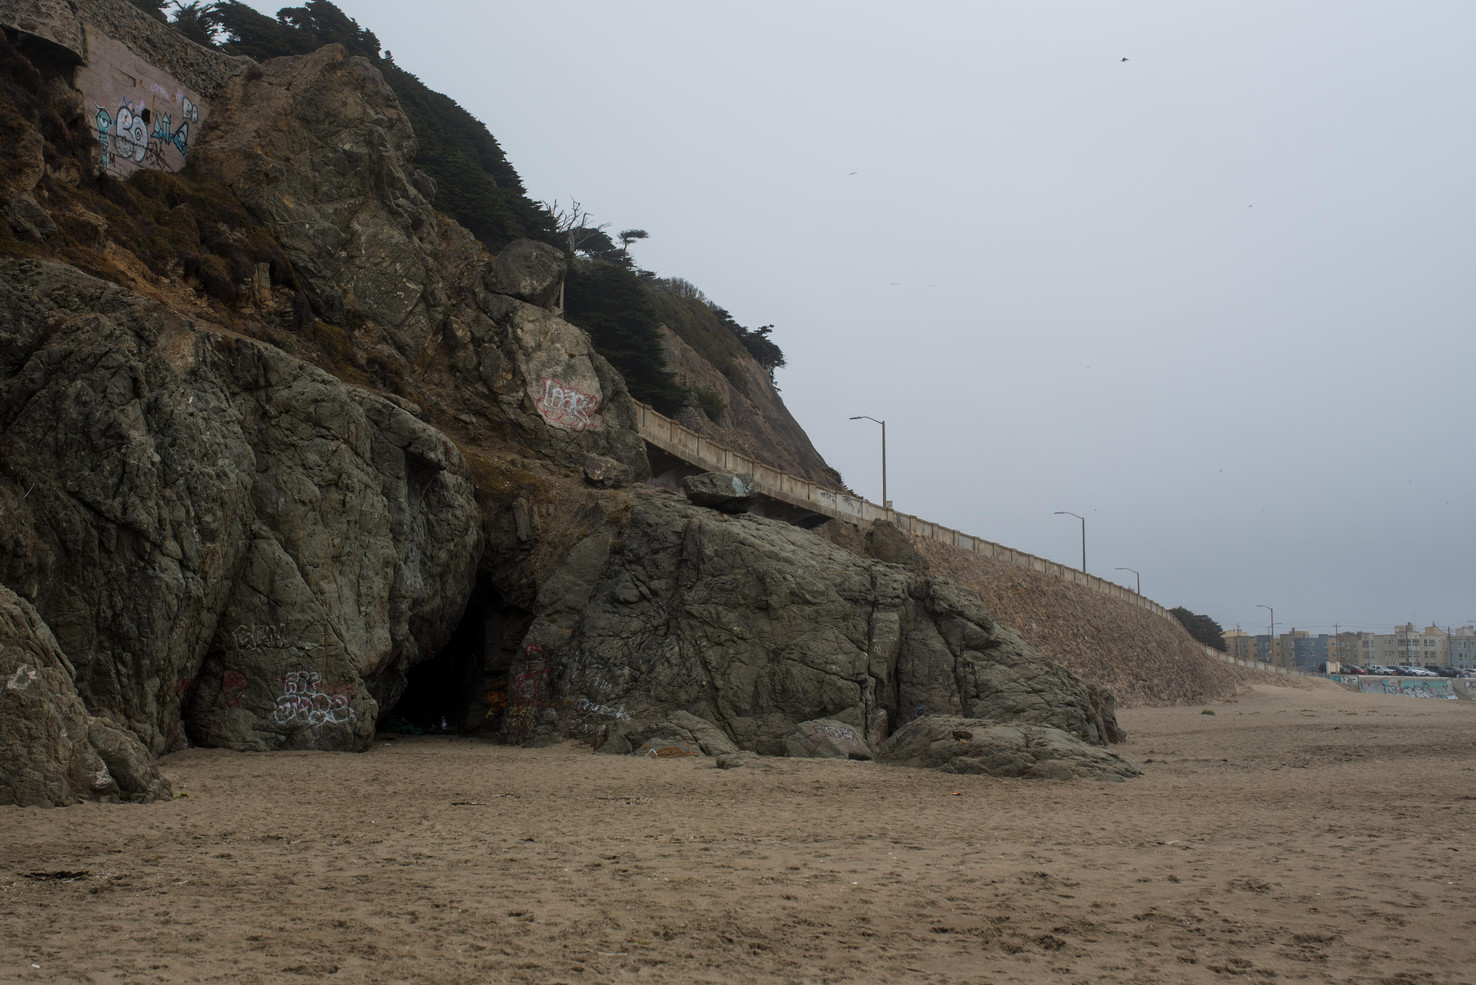 A cave many of San Francisco's homeless choose to stay temporaily. At the very end of the beach, most residents avoid the area. The closest houses are visible in the background.